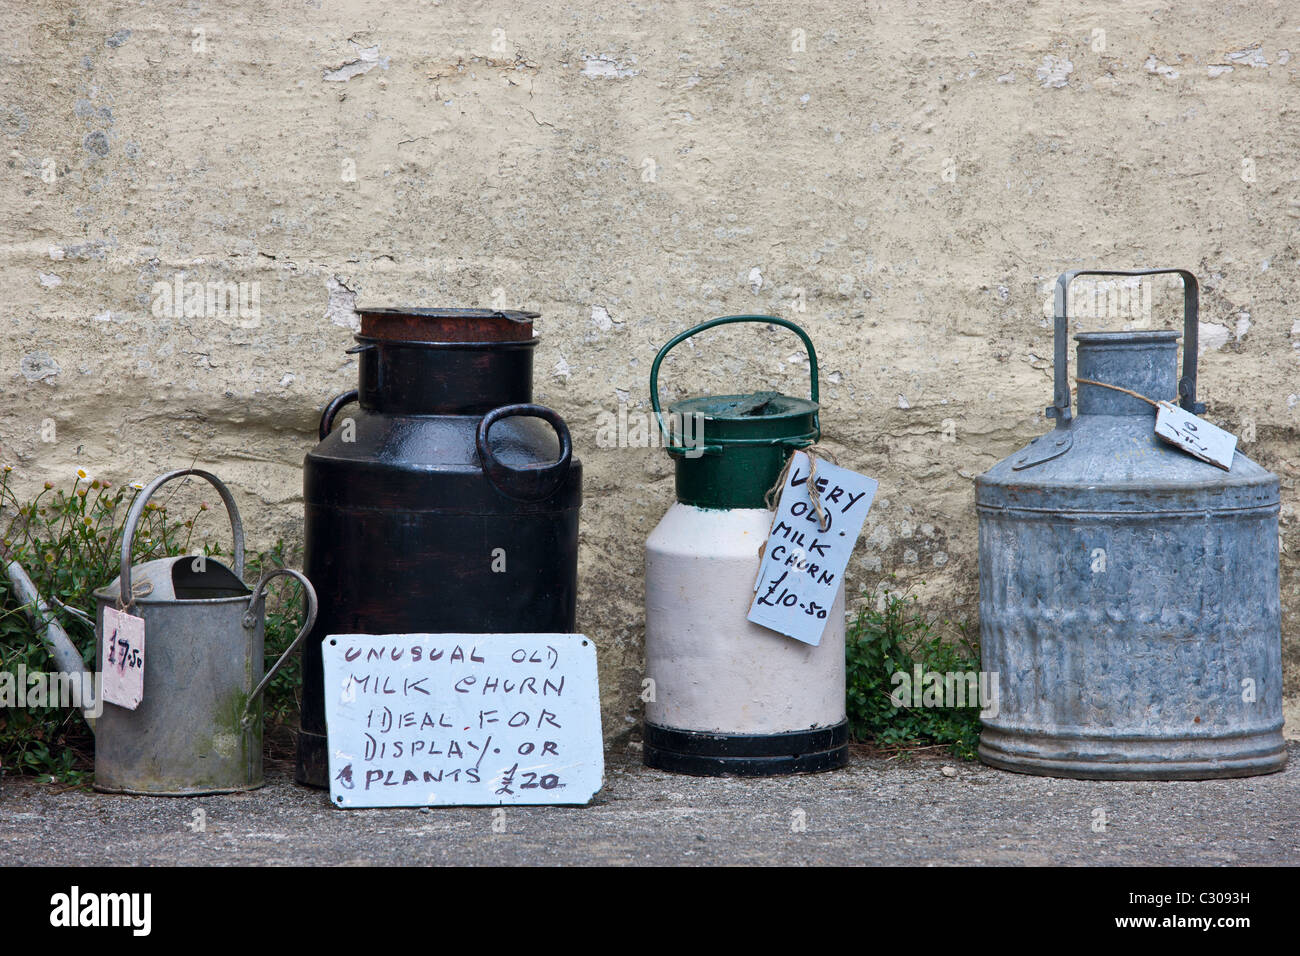 Ephemera old kitchen items as collectibles and bric a brac on sale in Cornwall, England, UK - Stock Image